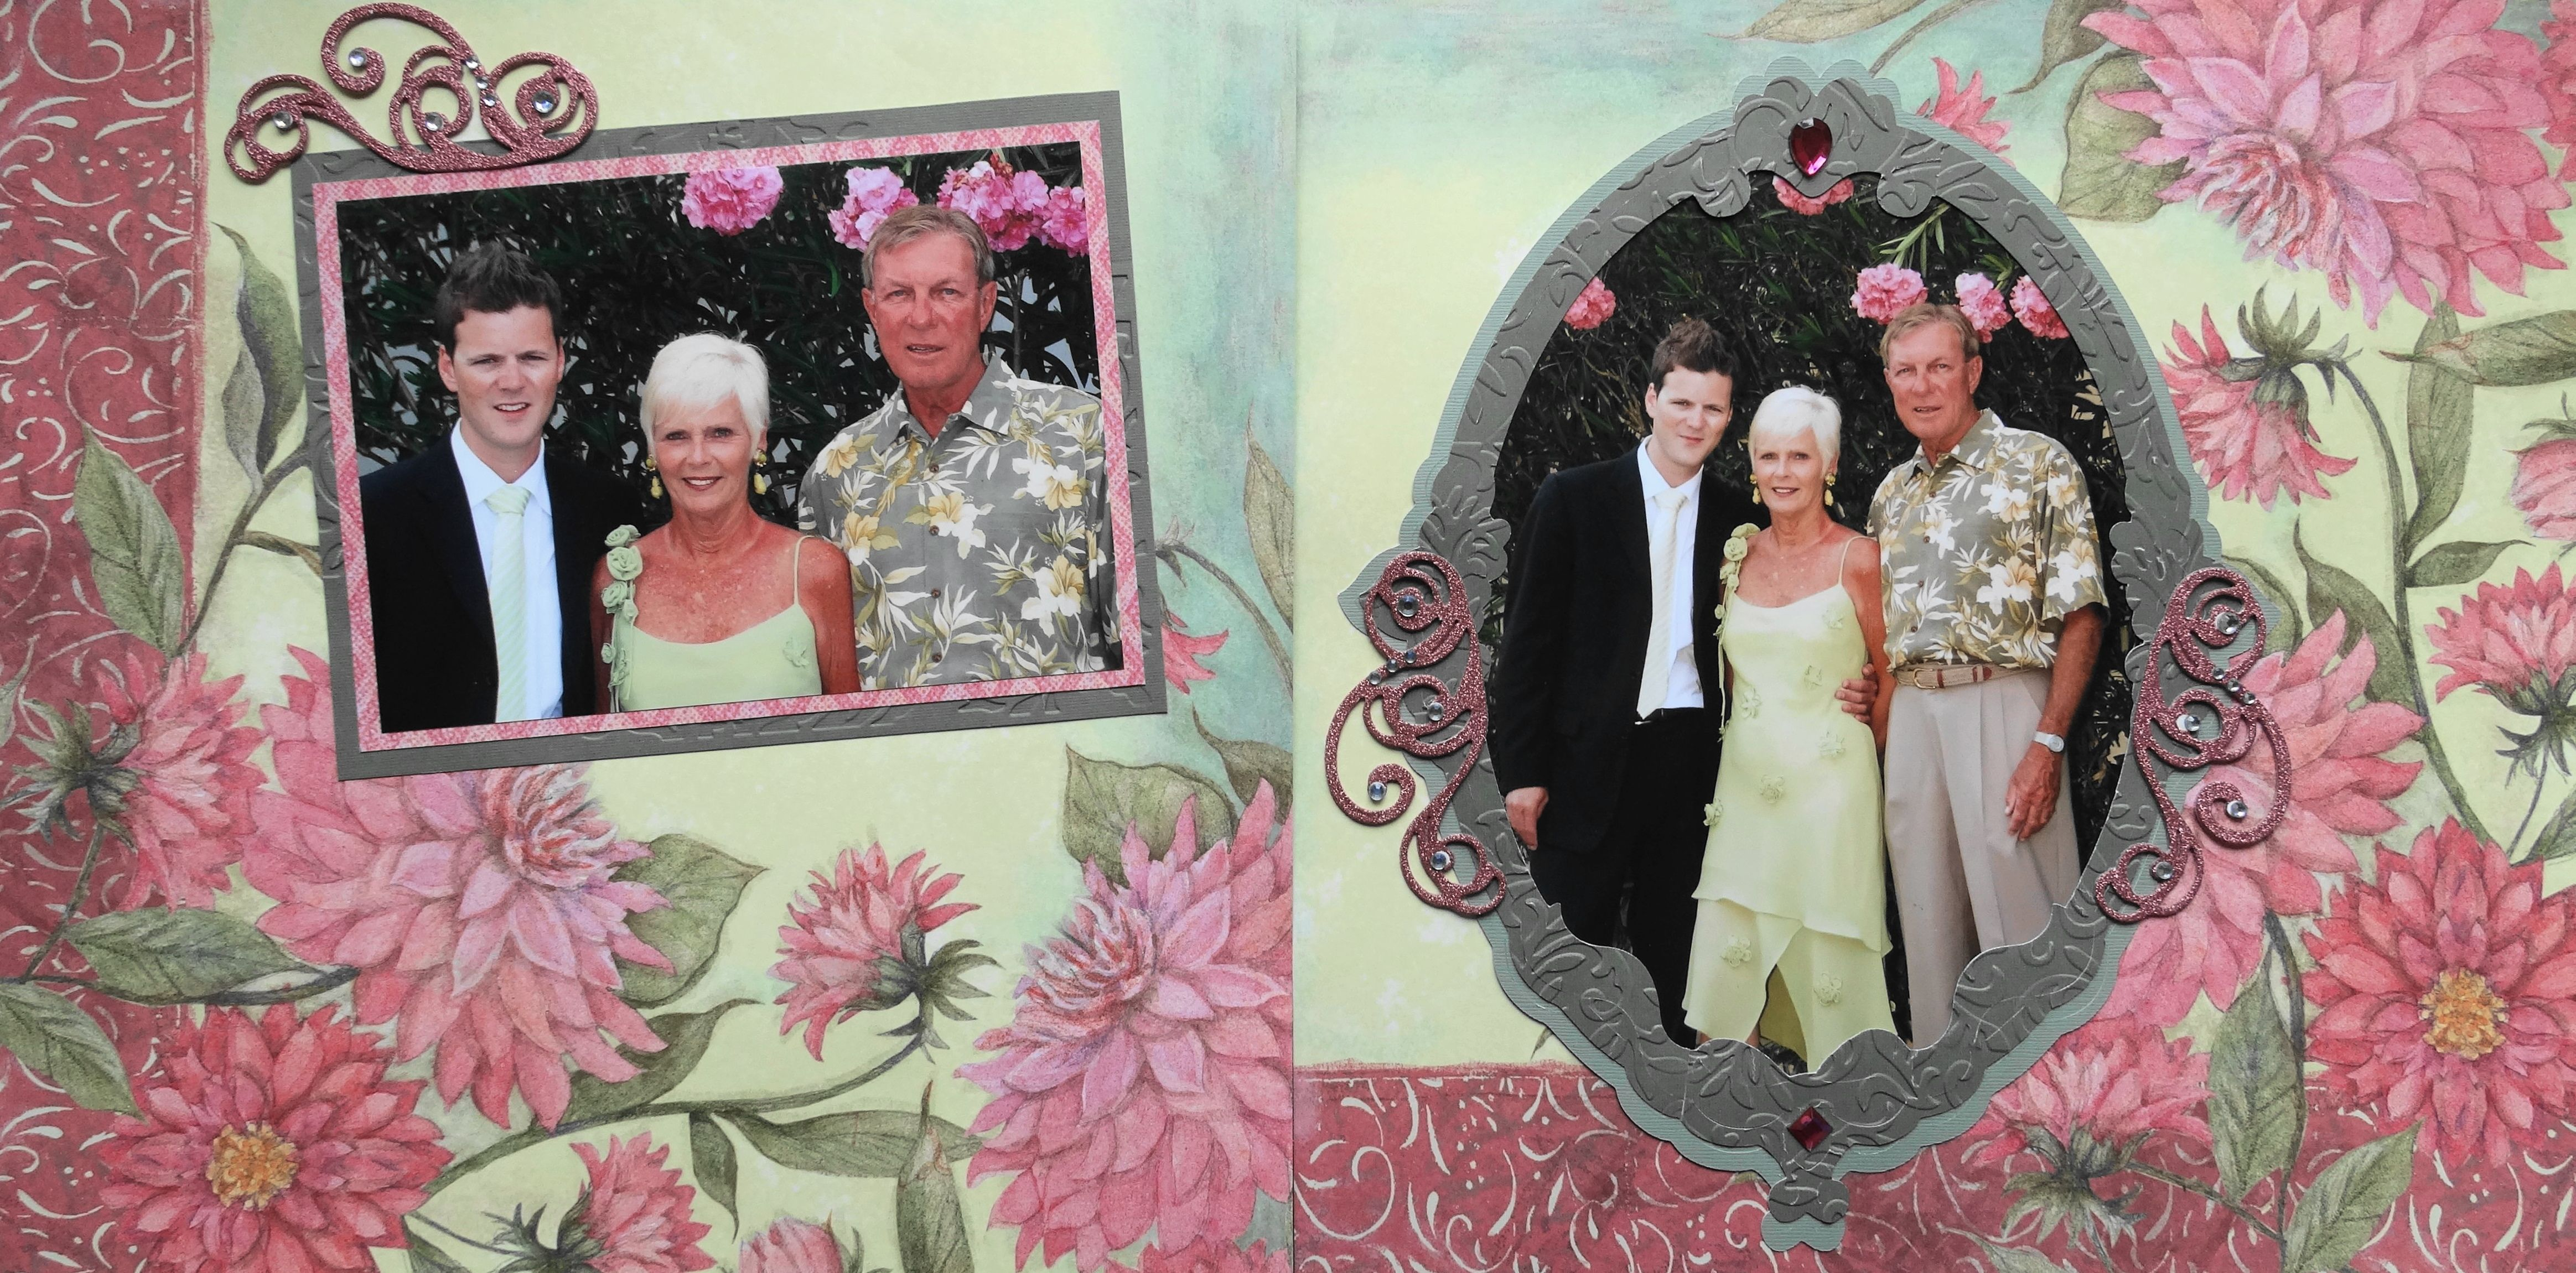 Wedding scrapbook ideas using cricut - Wedding Scrapbook Page The Groom S Parents 2 Page Wedding Layout With Flowers From